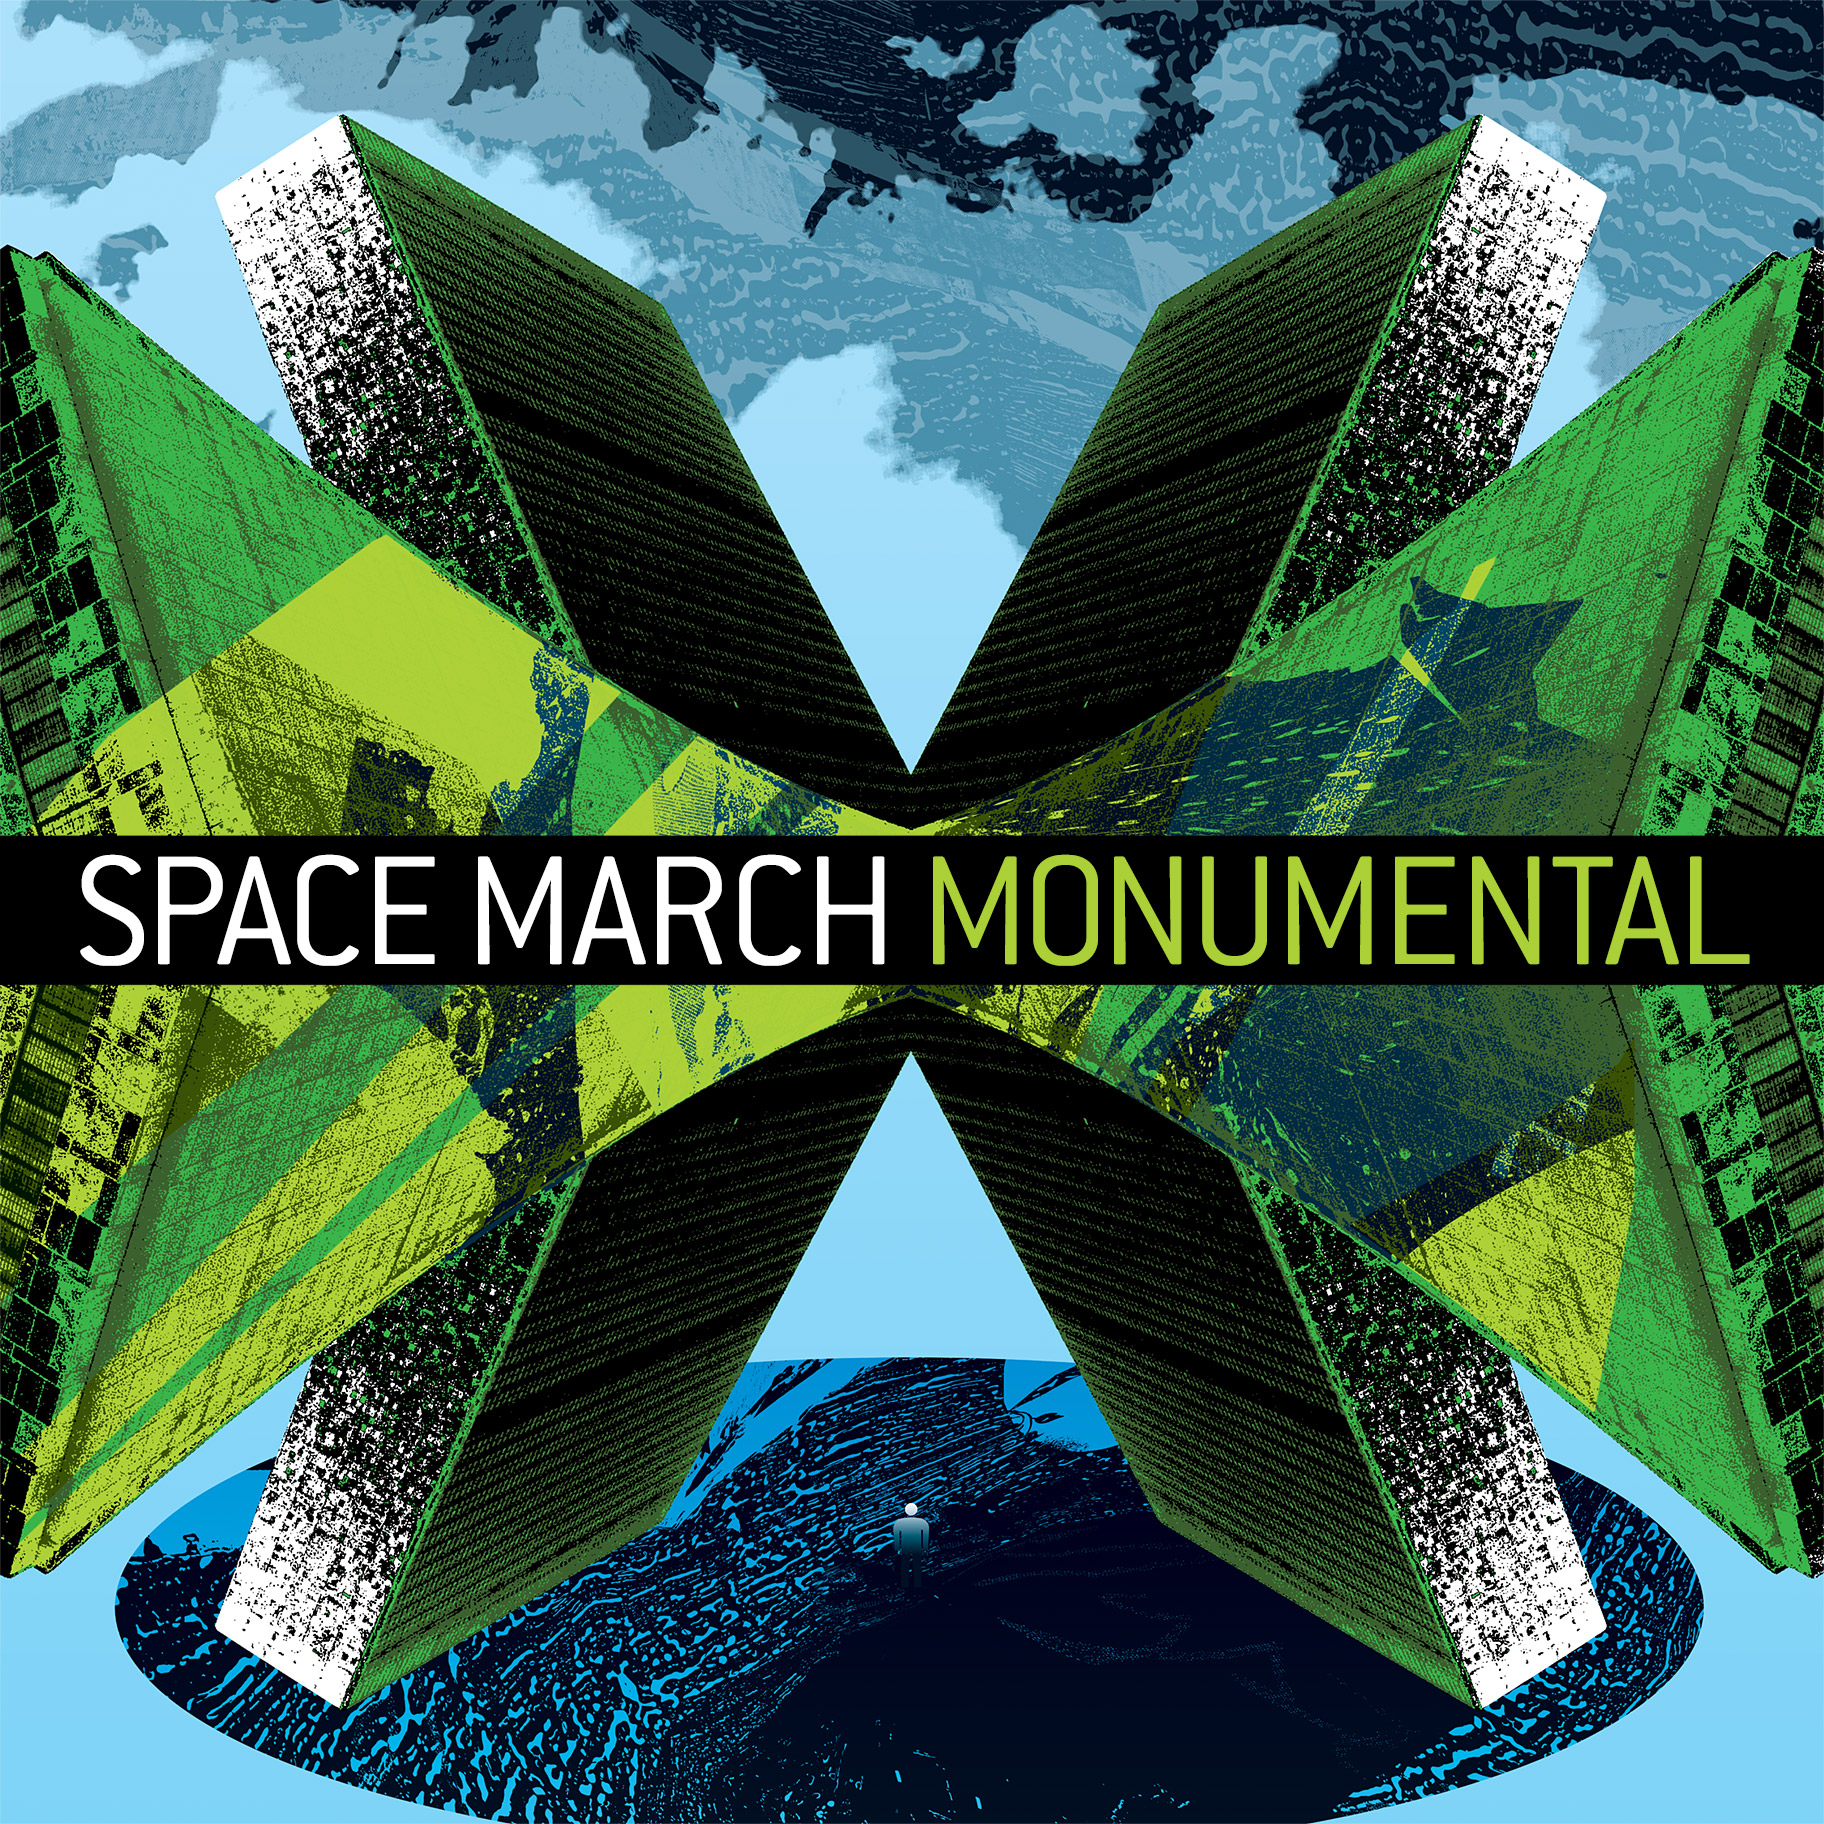 PF_SpaceMarch_Monumental_1824px